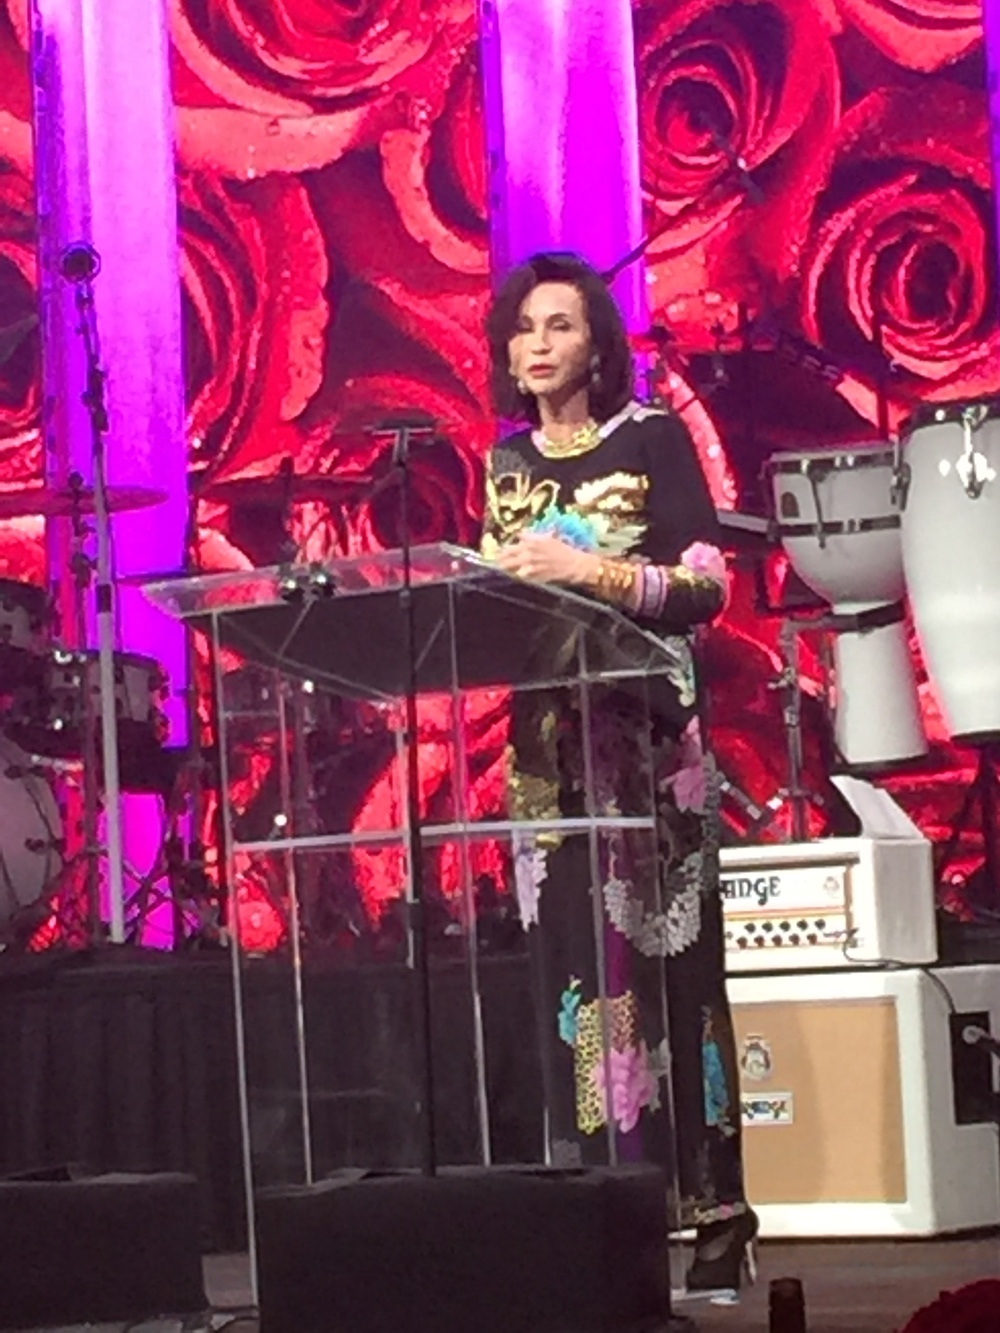 Peppita Serrano was an Honoree at the event and is the Founder of  Sivam . Here she is at the podium wearing her BuDhaGirl All Weather Bangles.